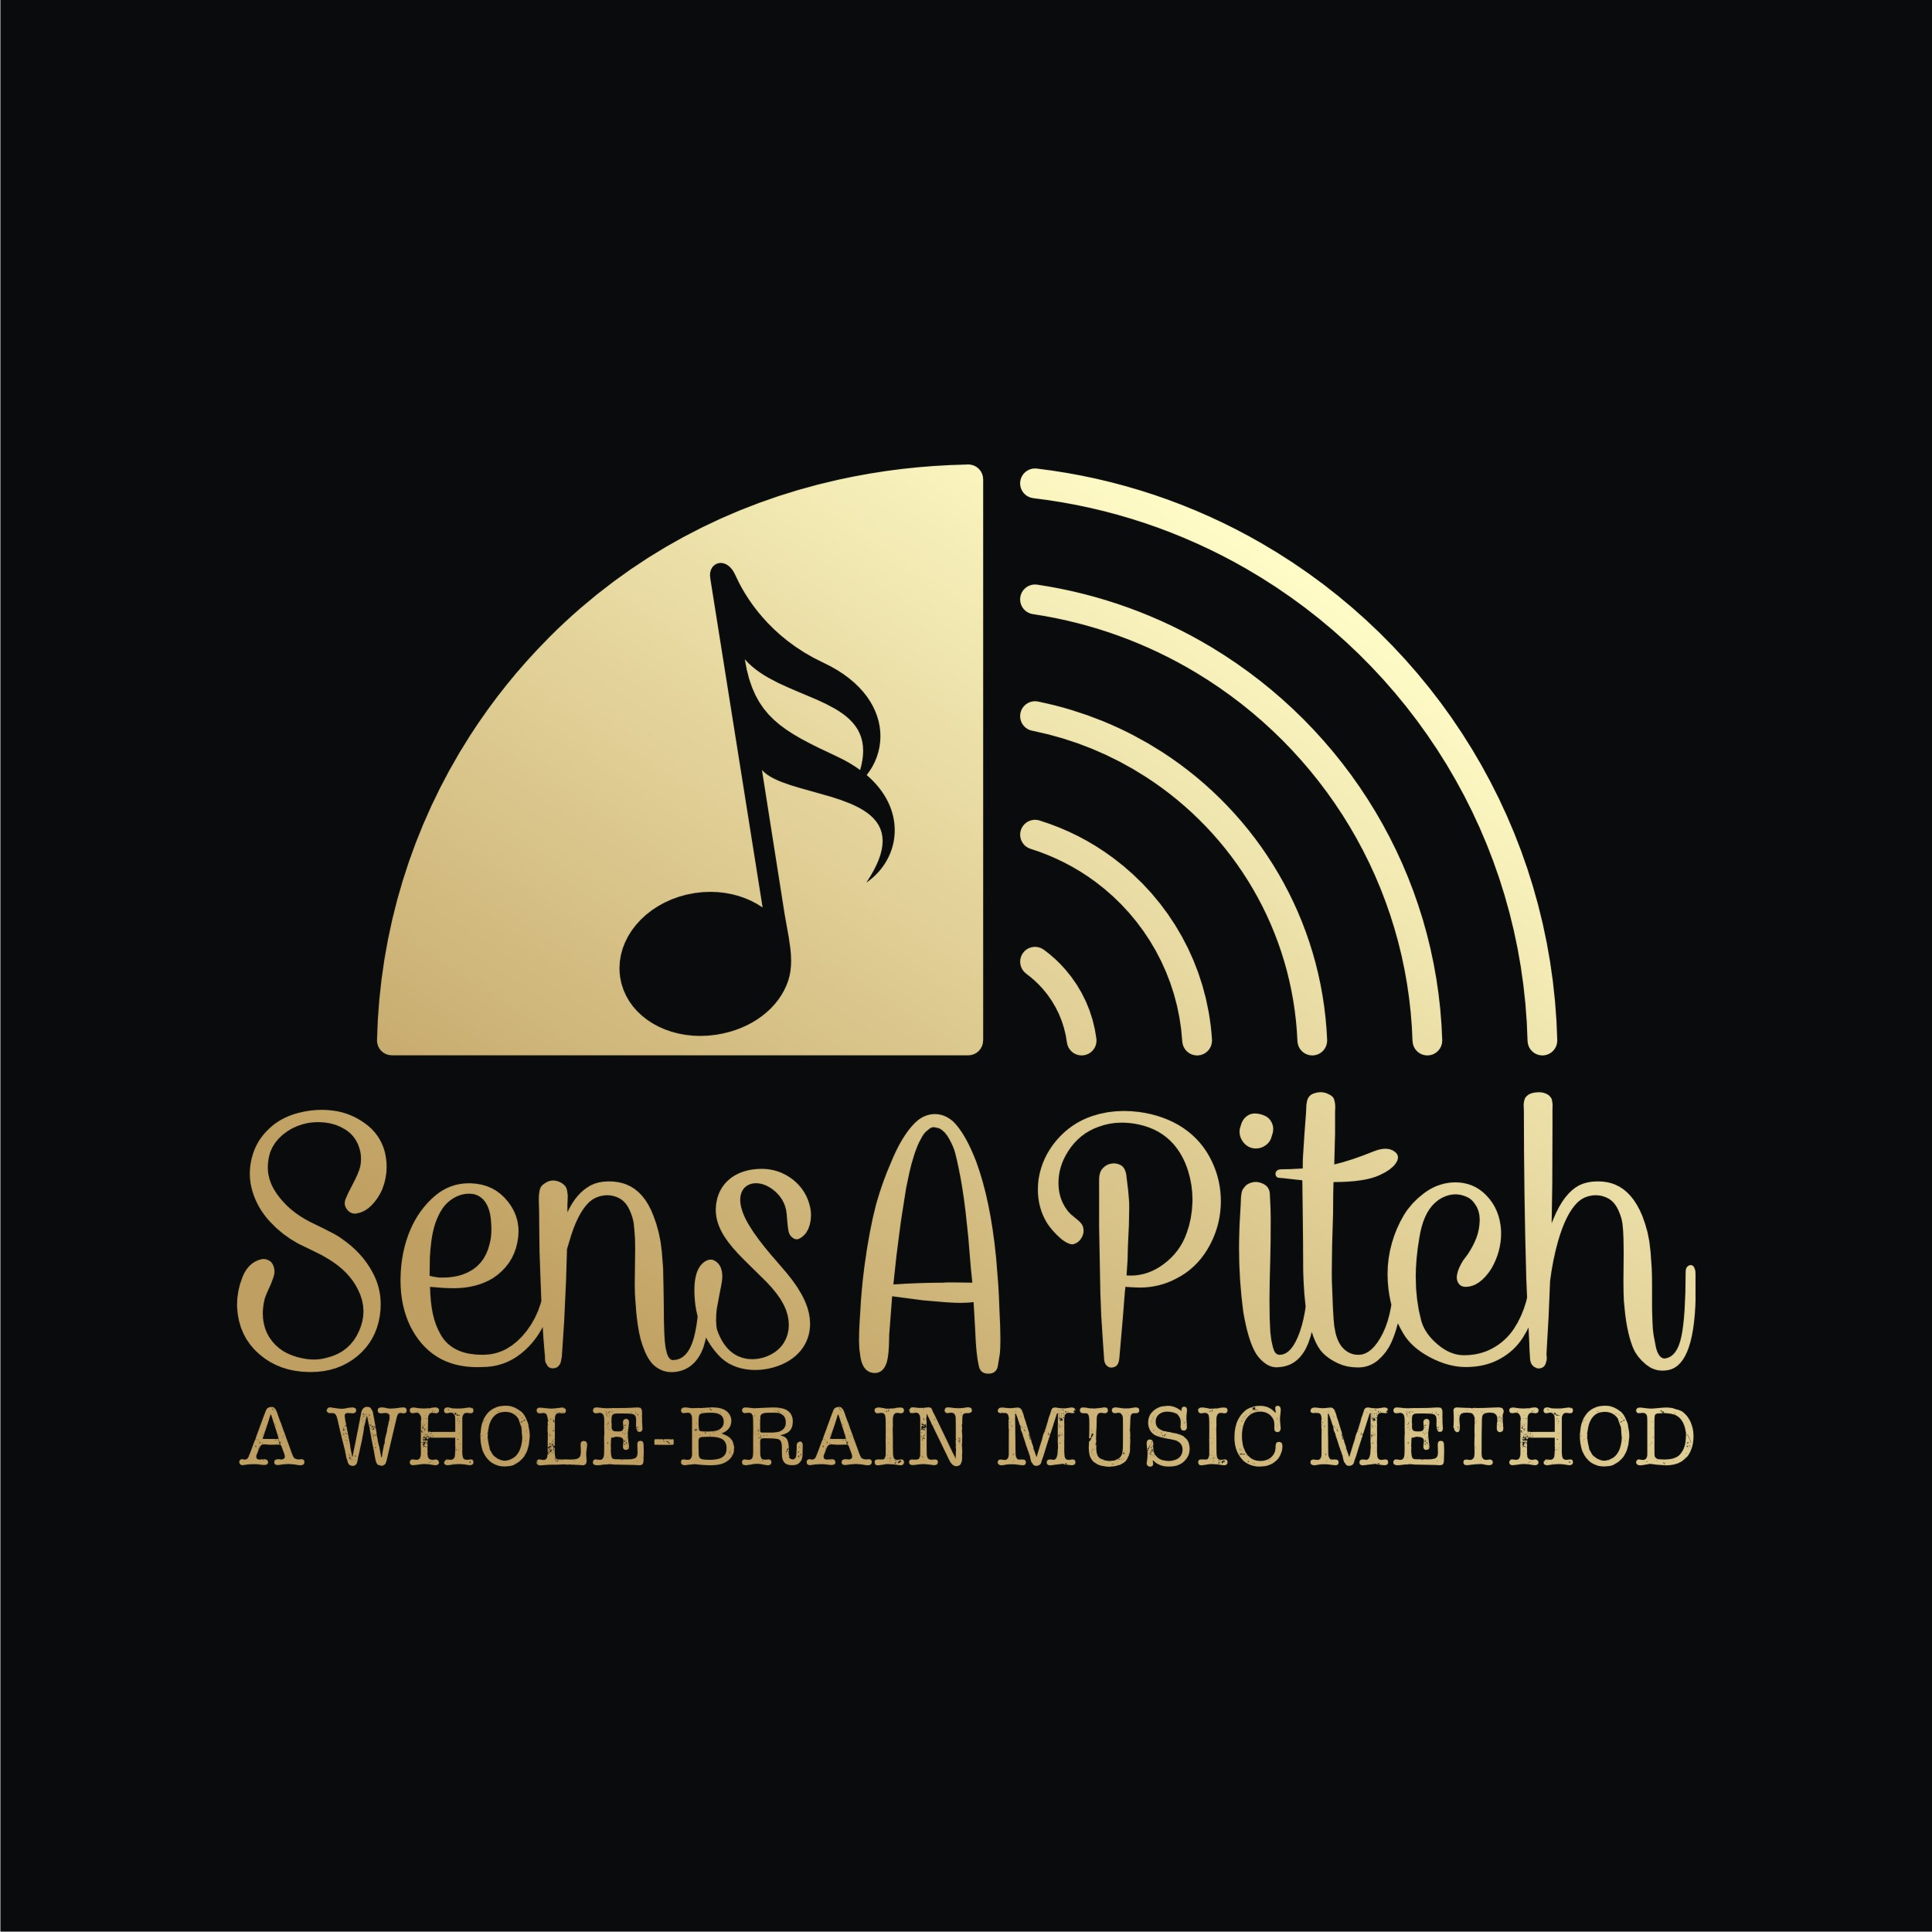 Create a logo for a Perfect Absolute Pitch Method - Music